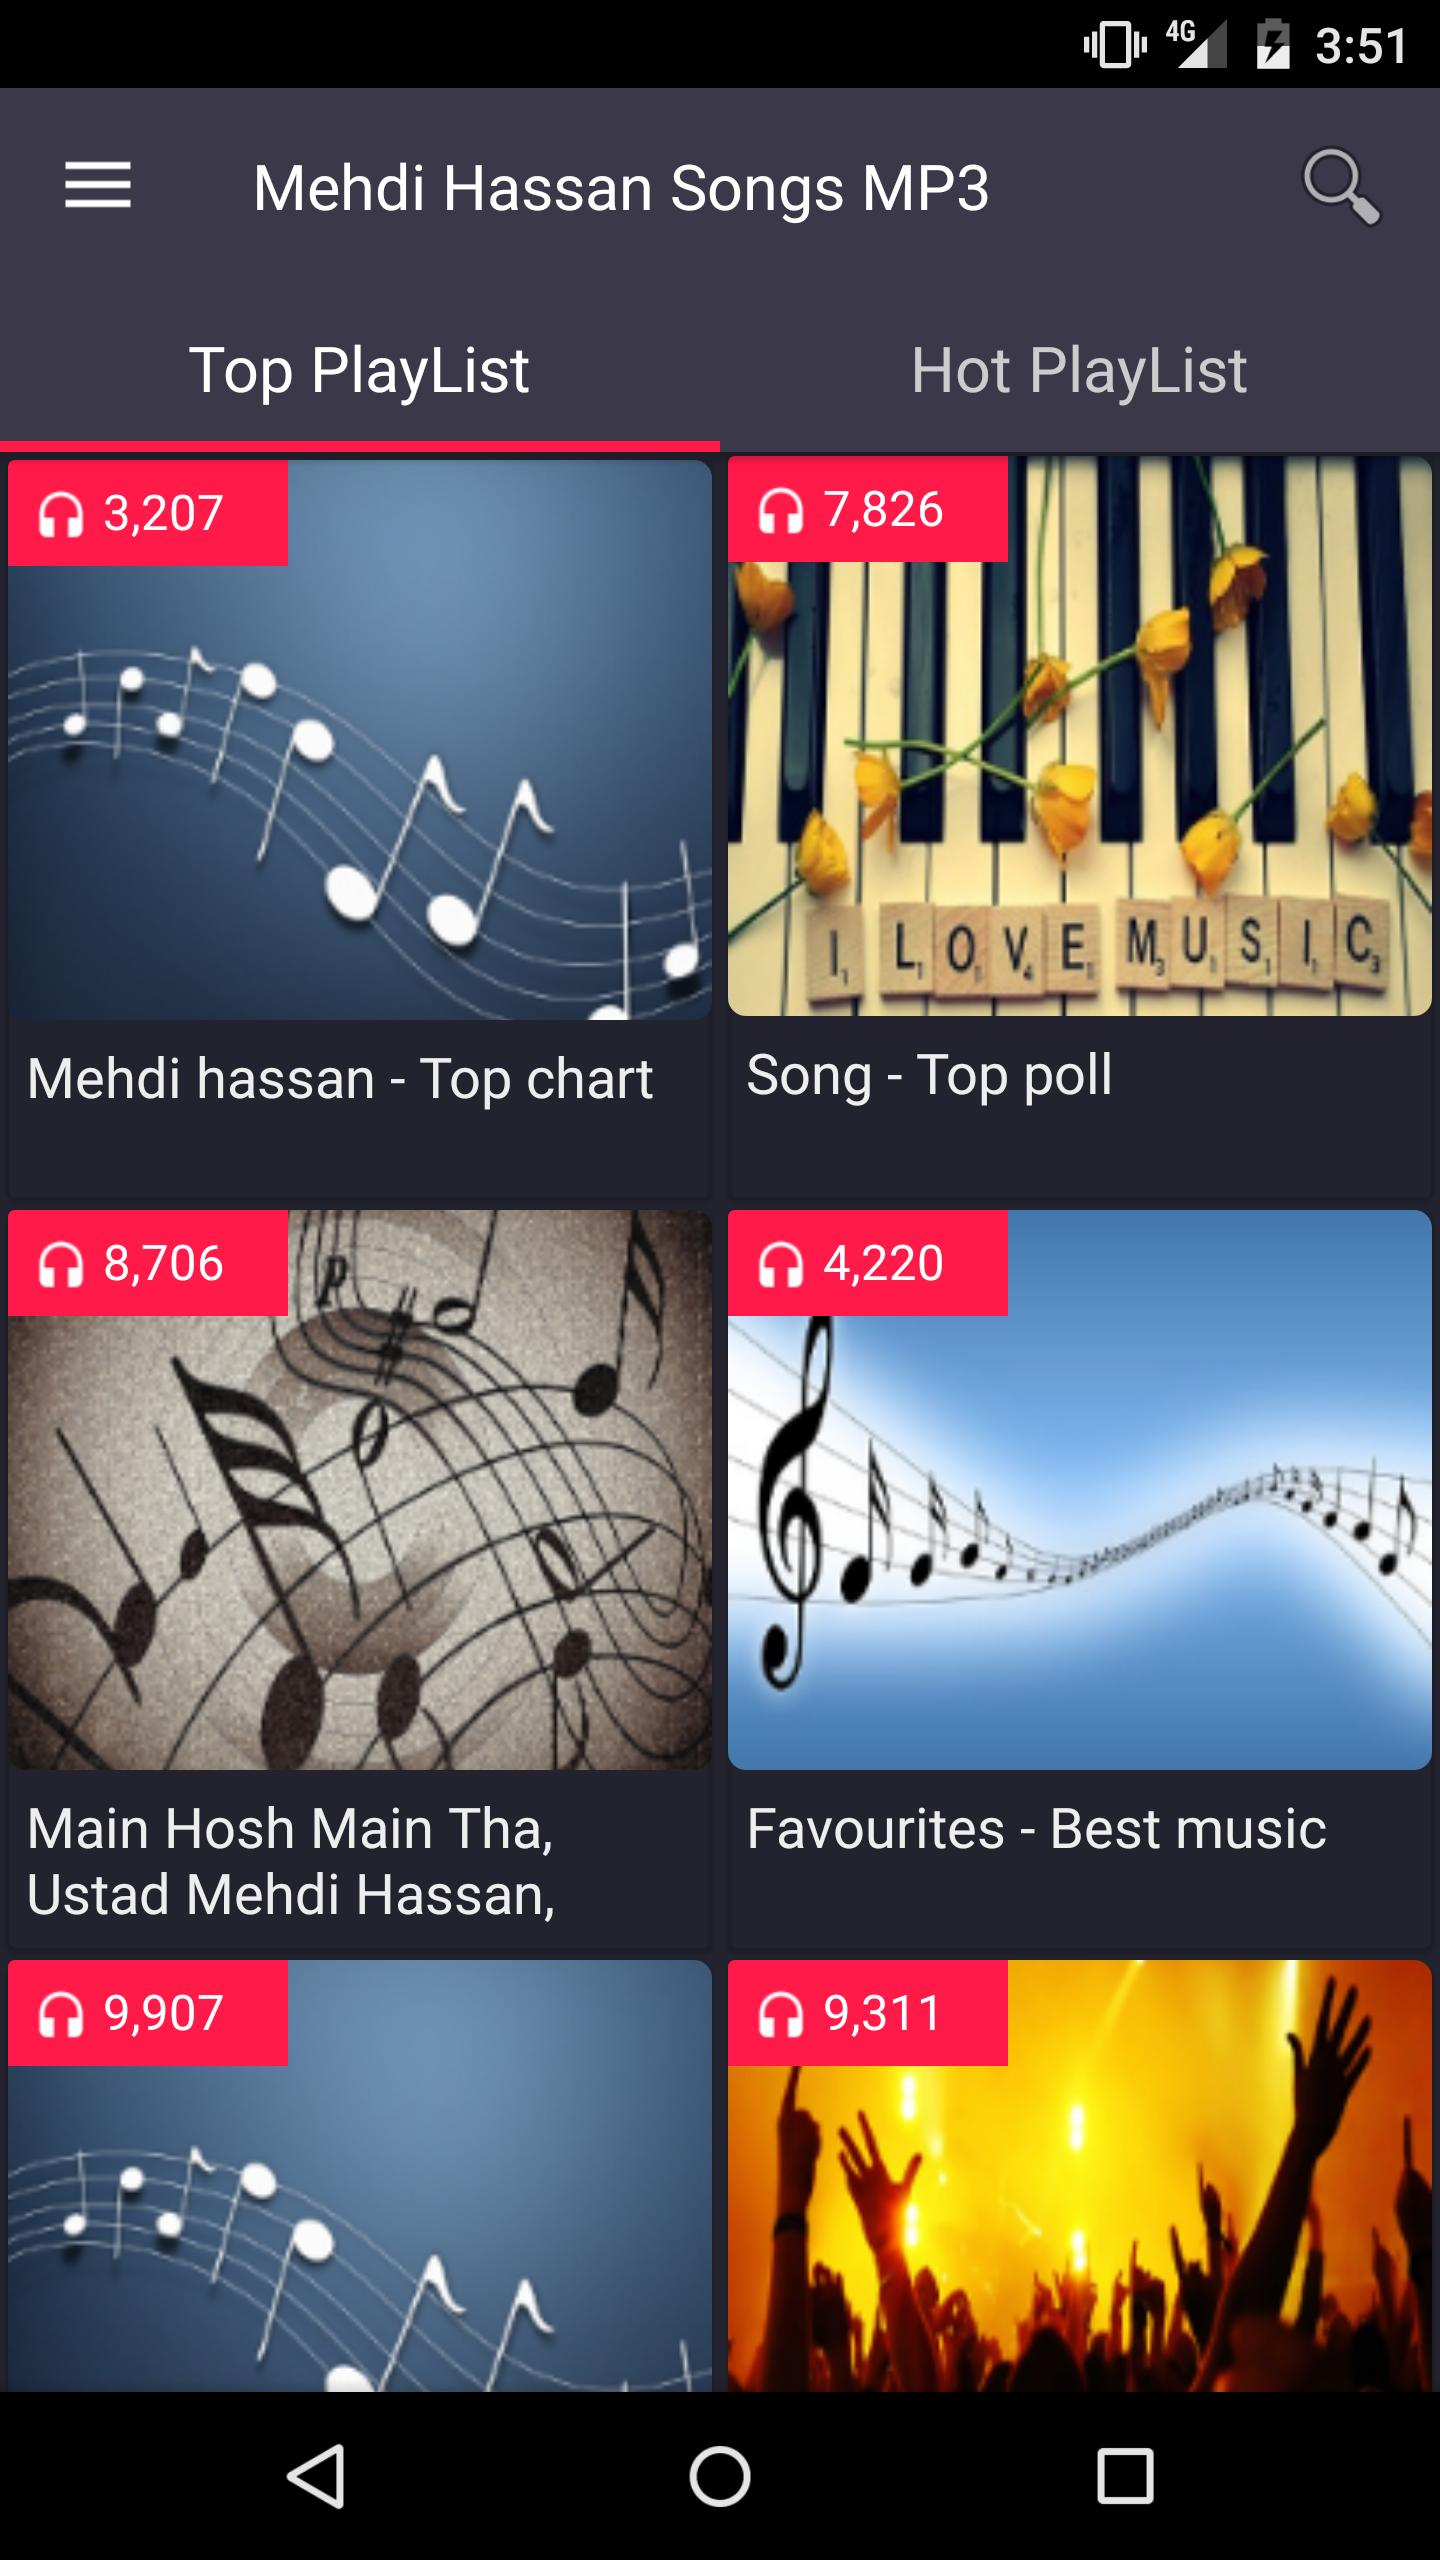 Mehdi Hassan Songs MP3 for Android - APK Download